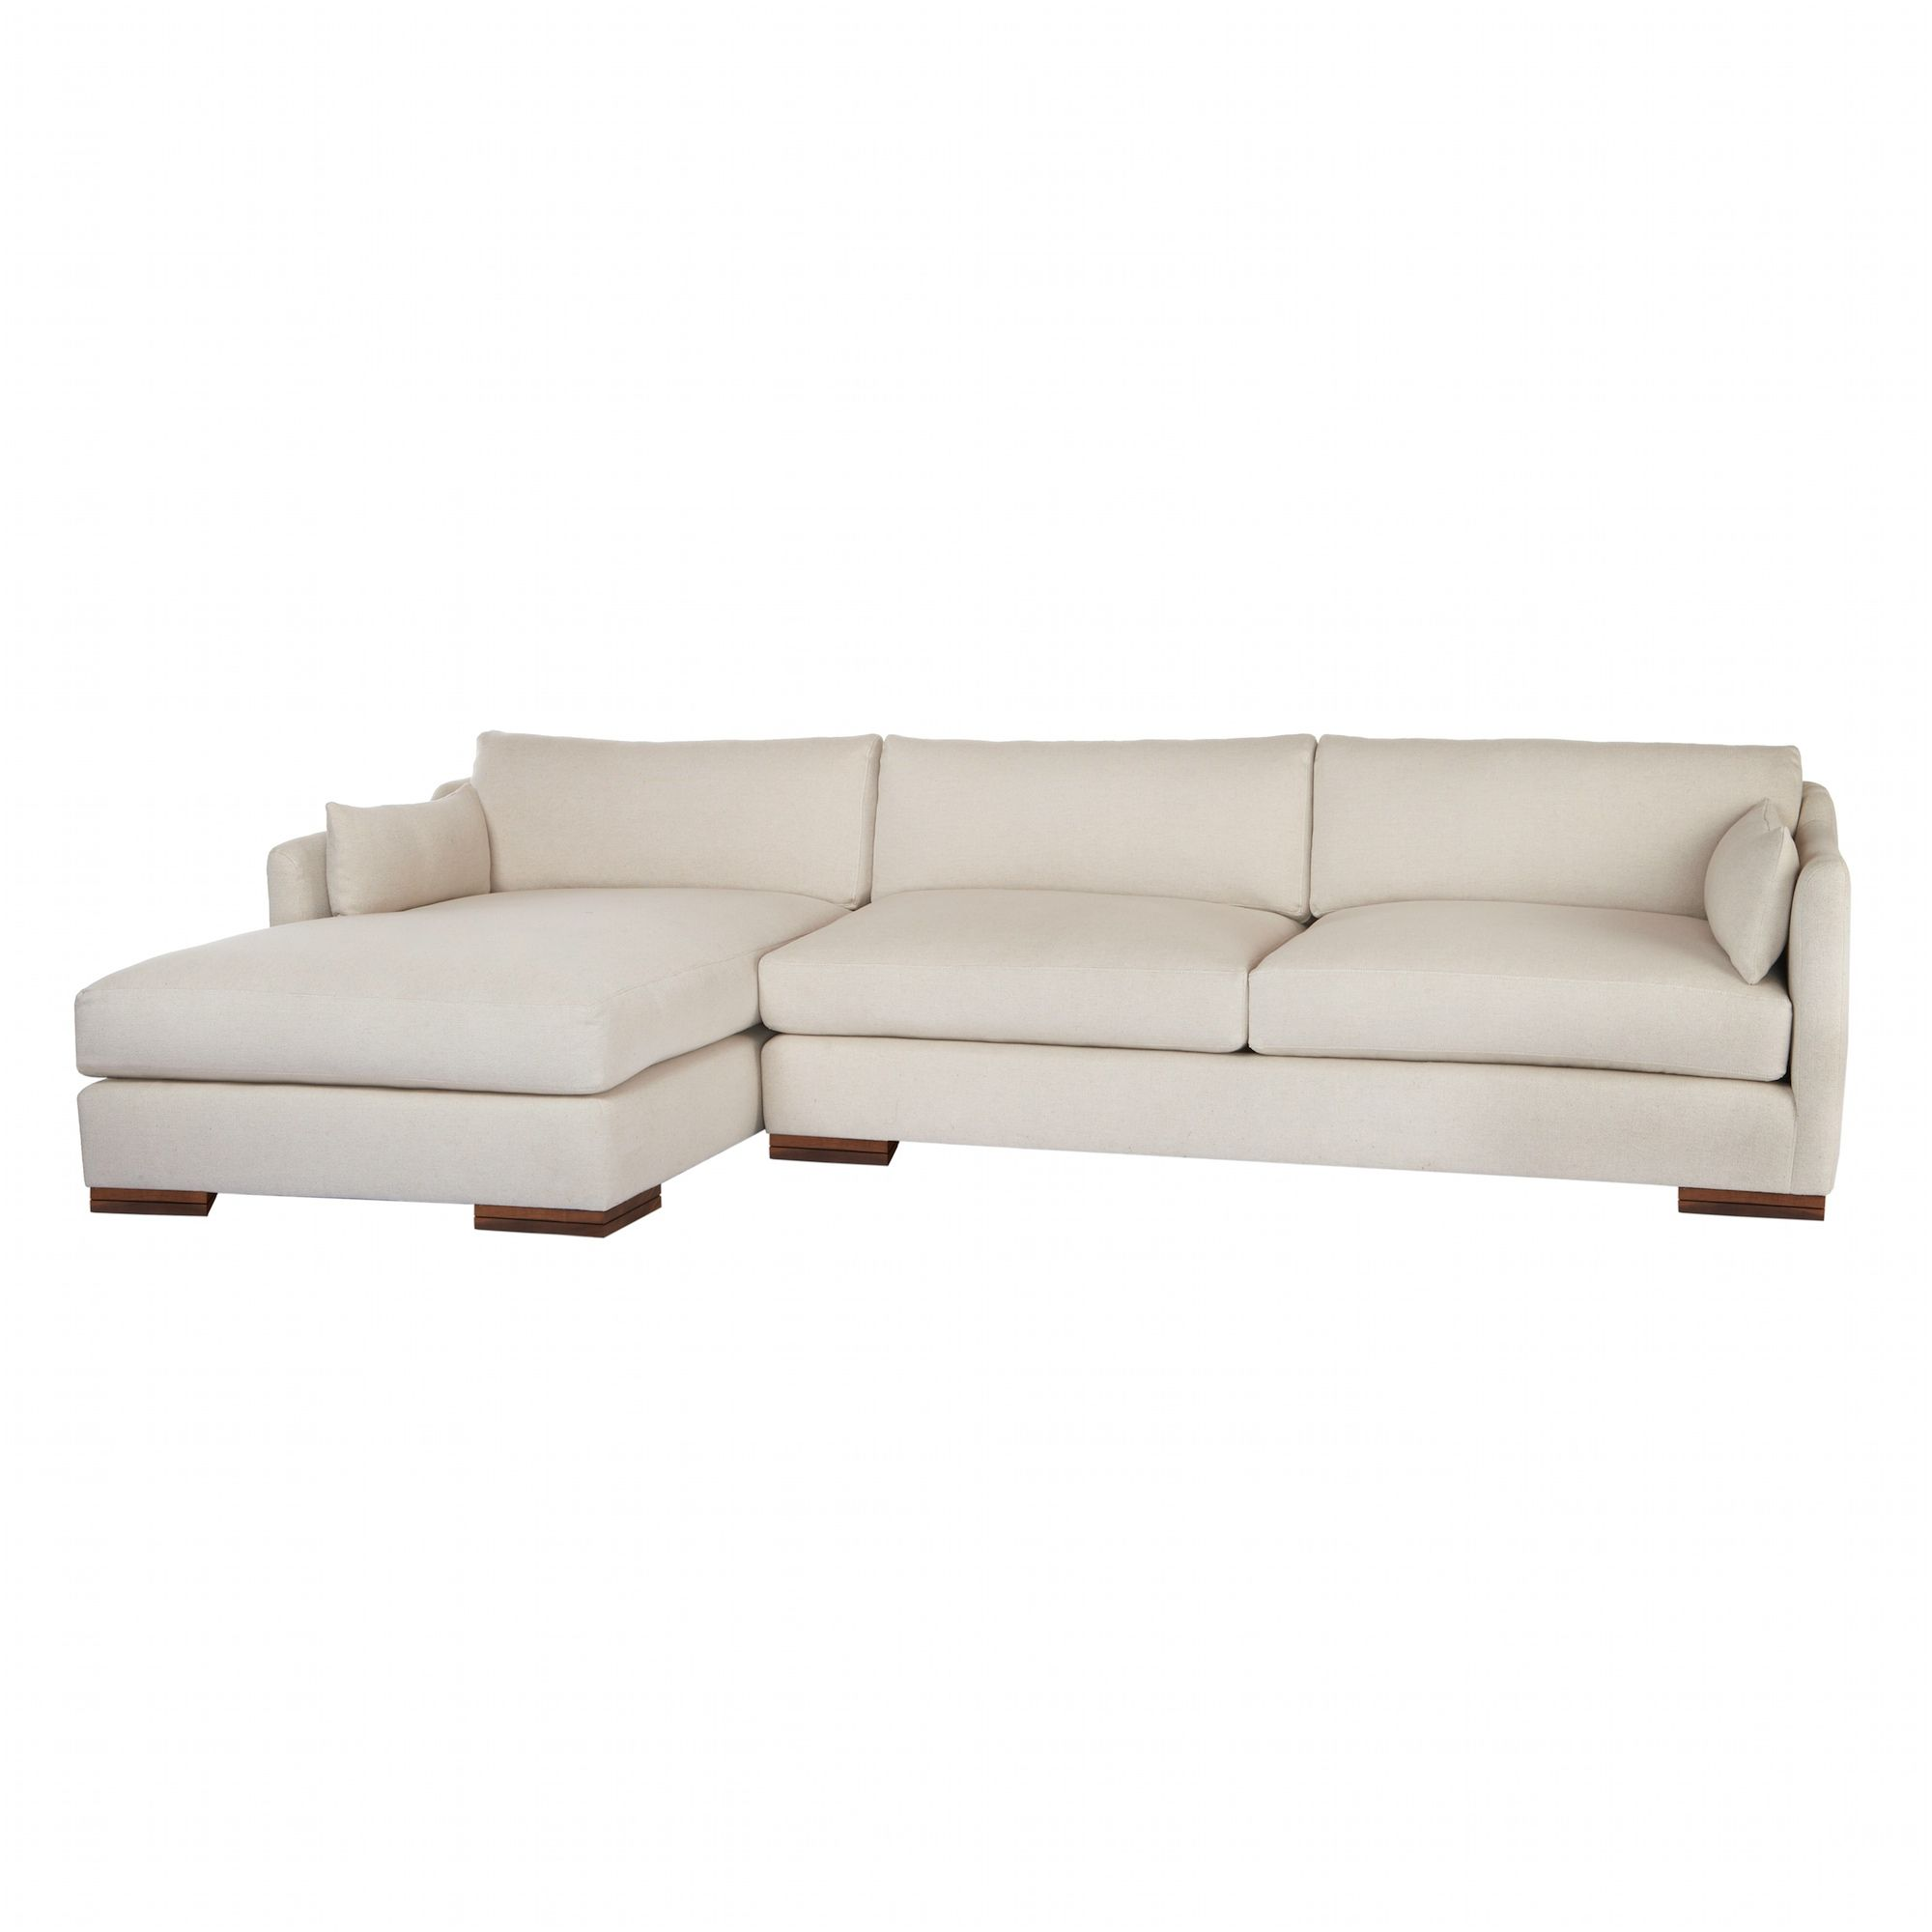 Check Out The Dexter 2pc Sectional On Elte Com Sectional Family